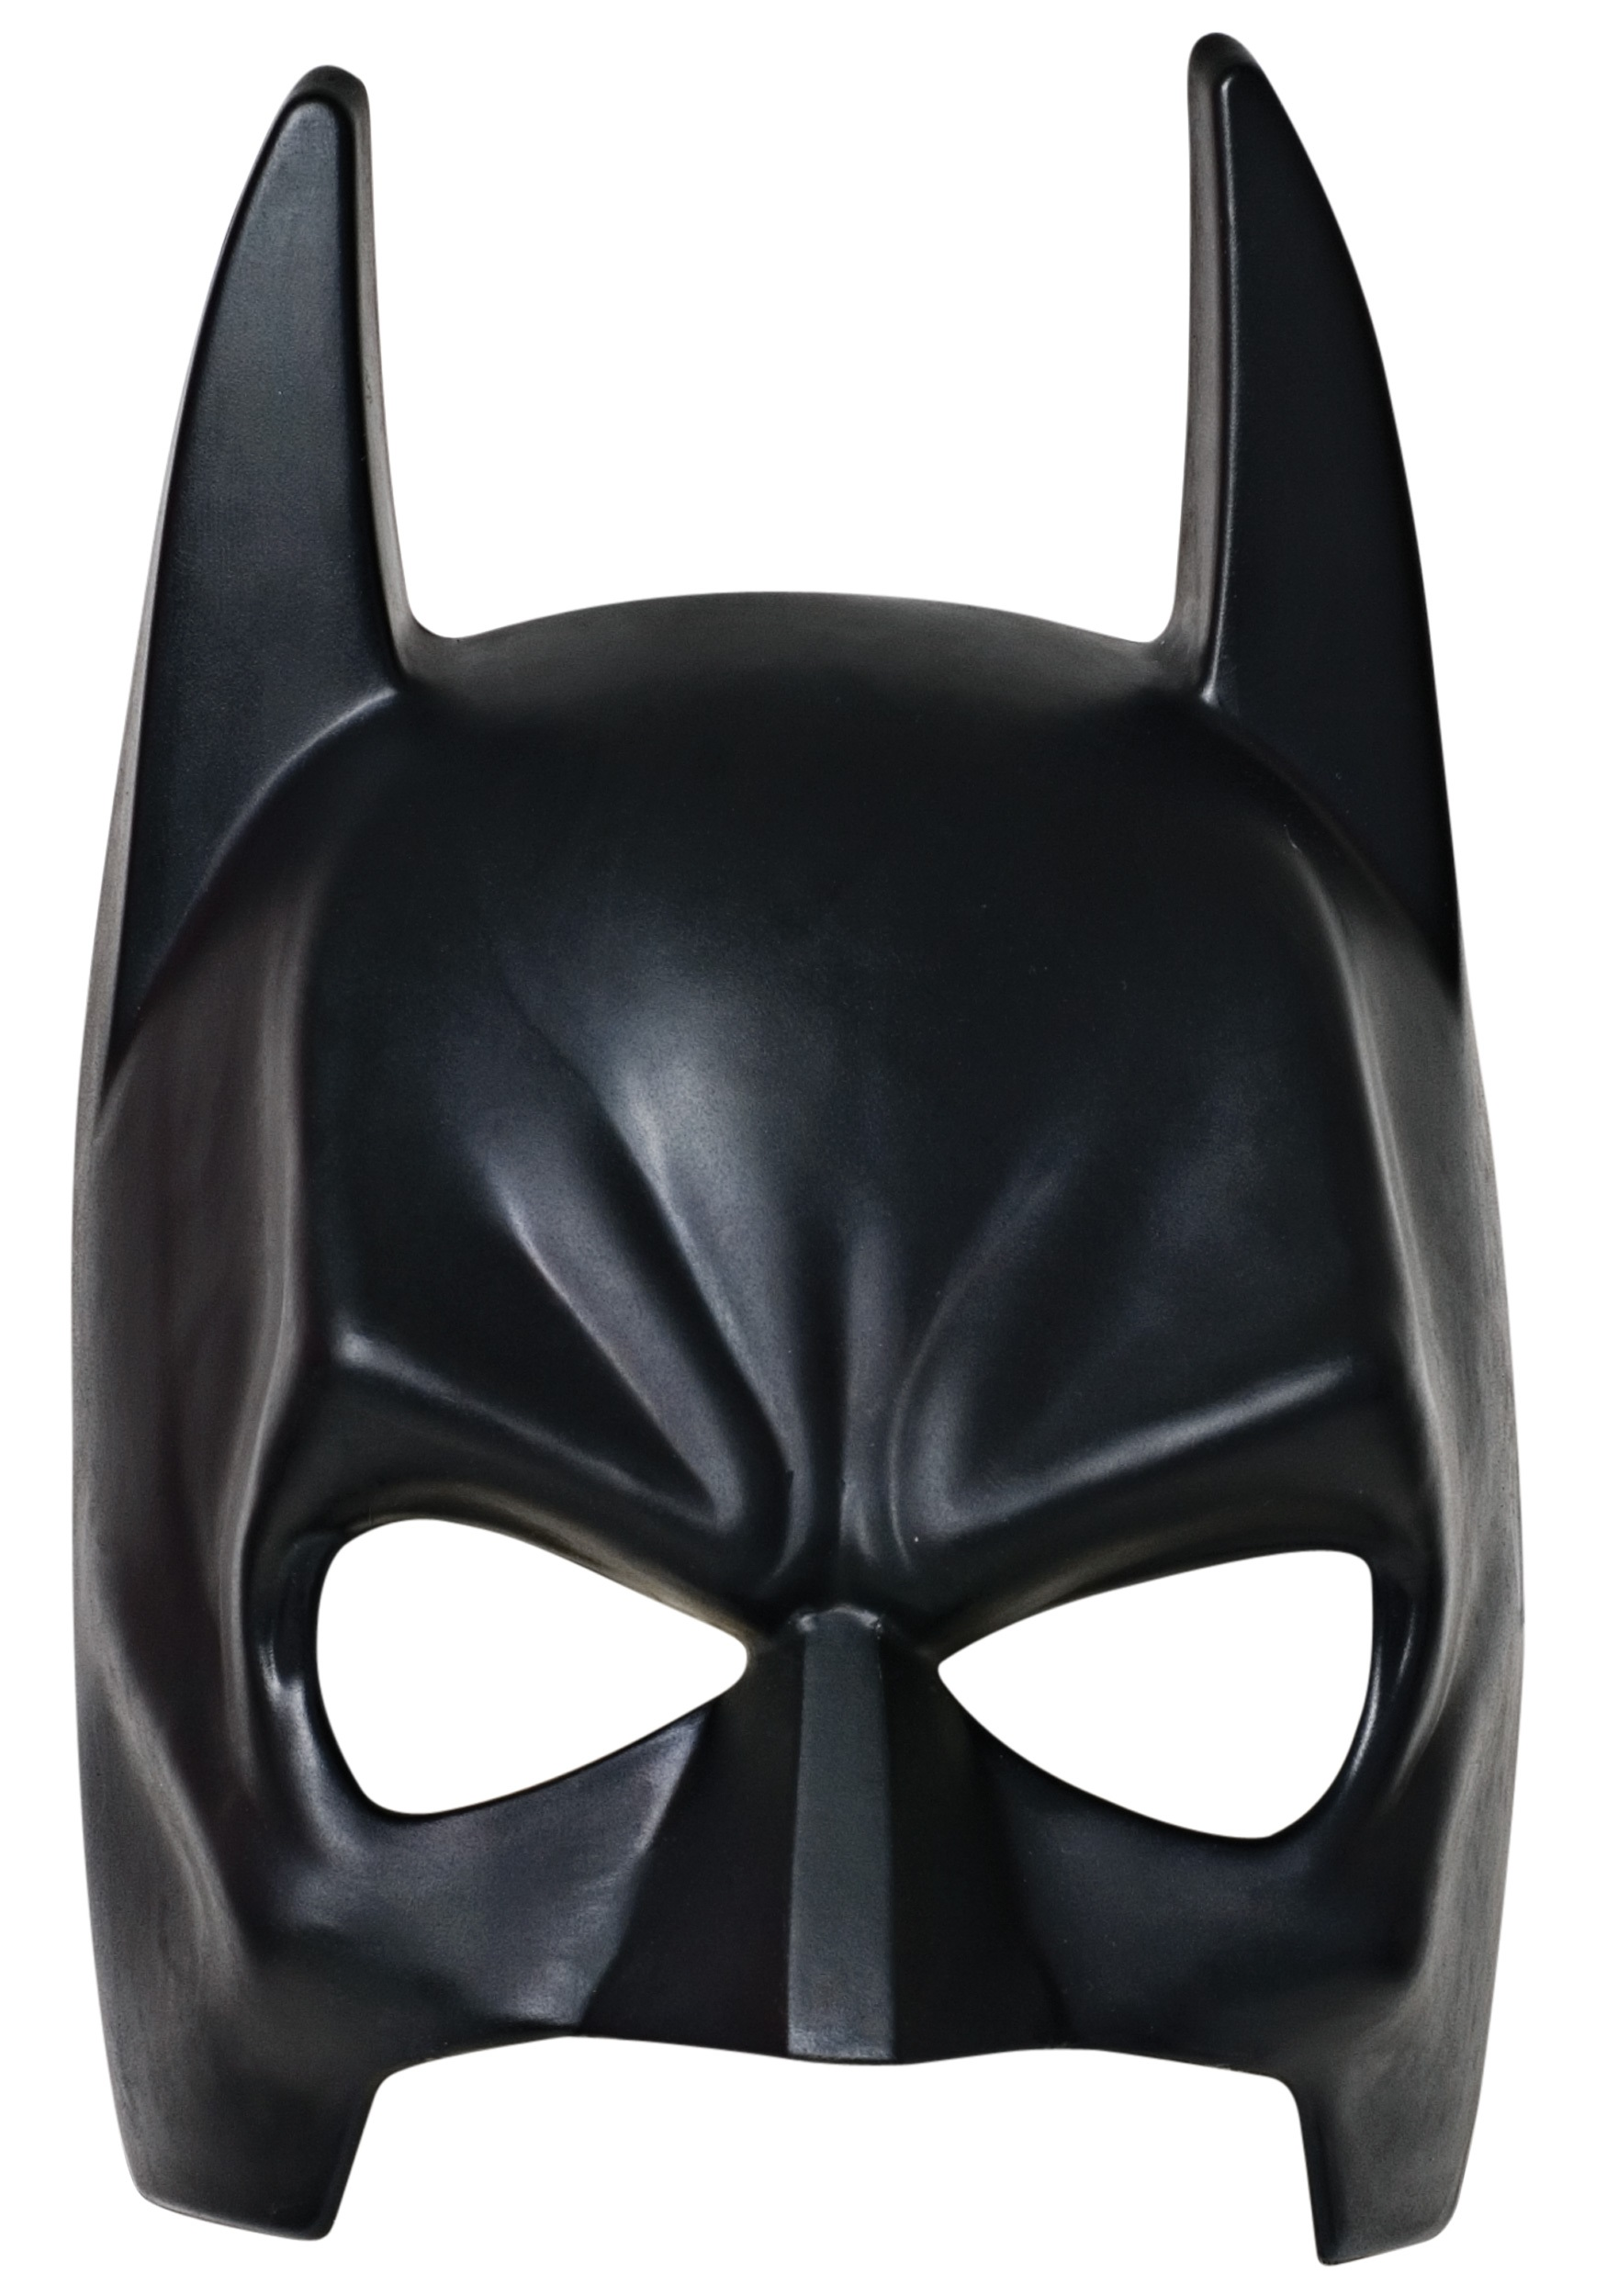 HD Batman Mask PNG image #38917